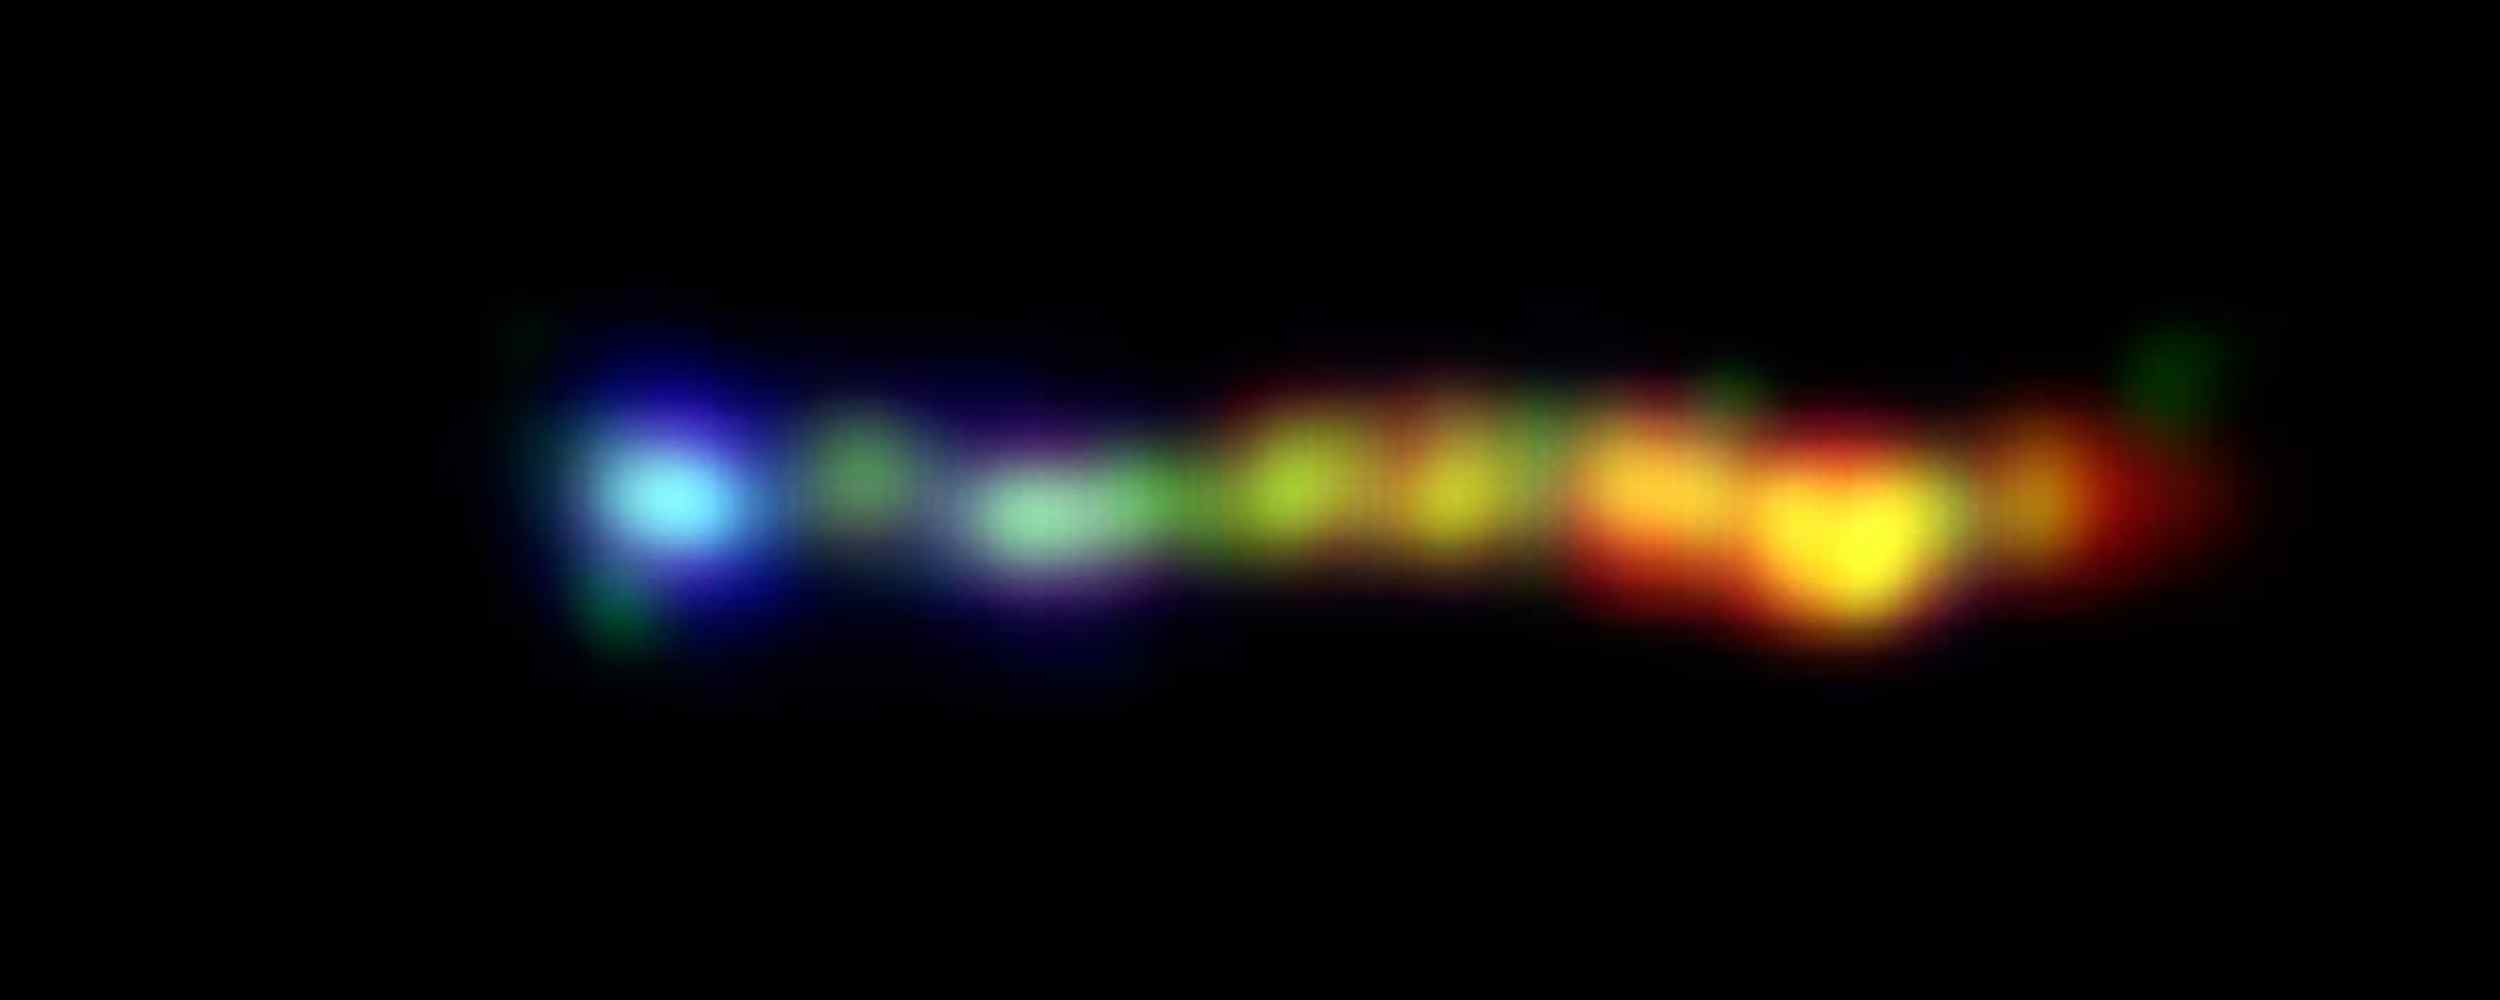 This new false-colored image from NASA's Hubble, Chandra and Spitzer space telescopes shows a giant jet of particles that has been shot out from the vicinity of a type of supermassive black hole called a quasar. Different wavelengths of light are reflected in the different colors. Image credit: NASA/JPL-Caltech/Yale Univ.